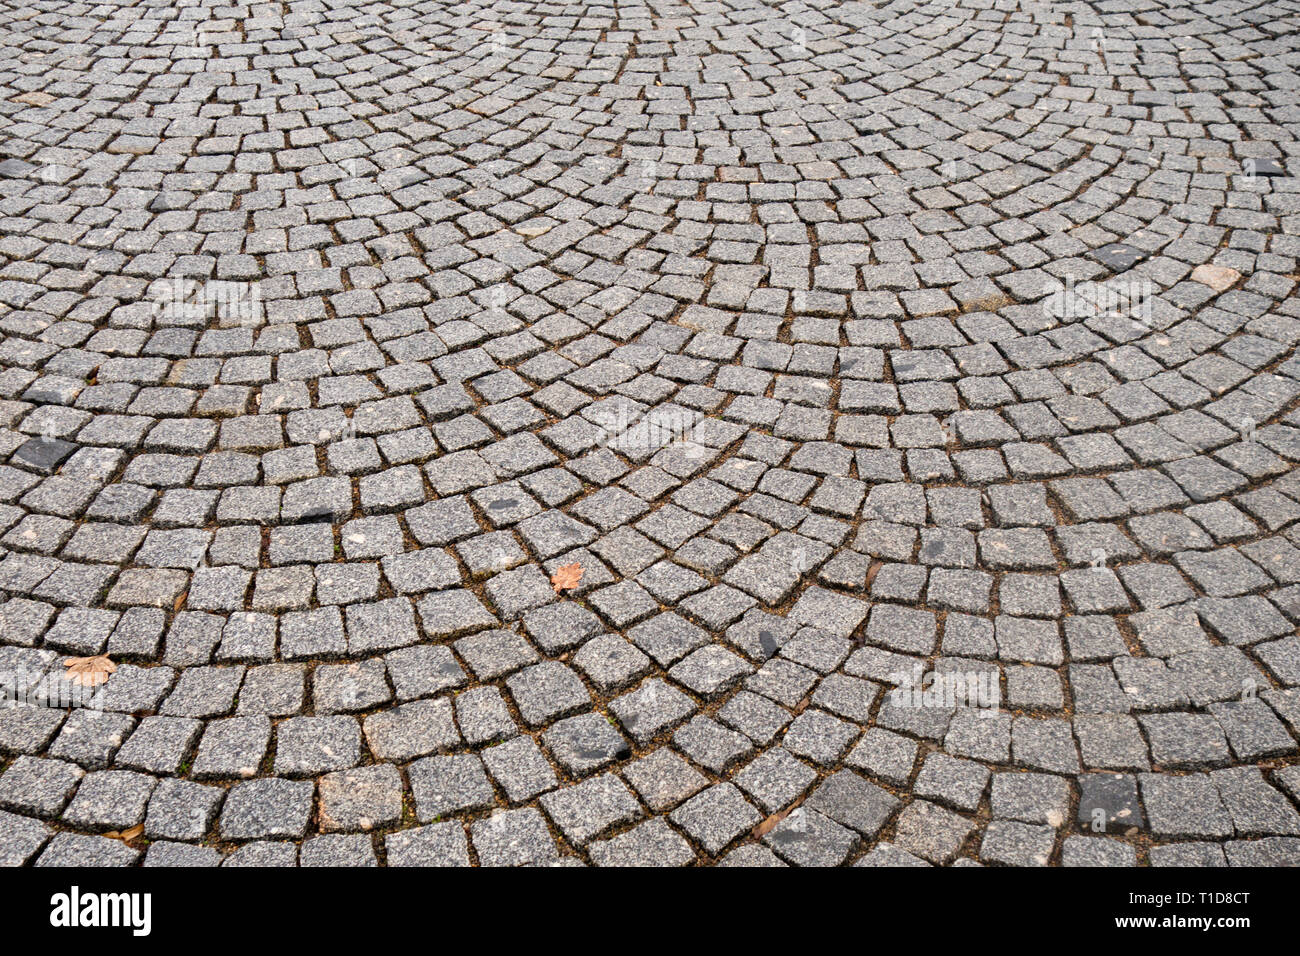 road paved with setts - Stock Image